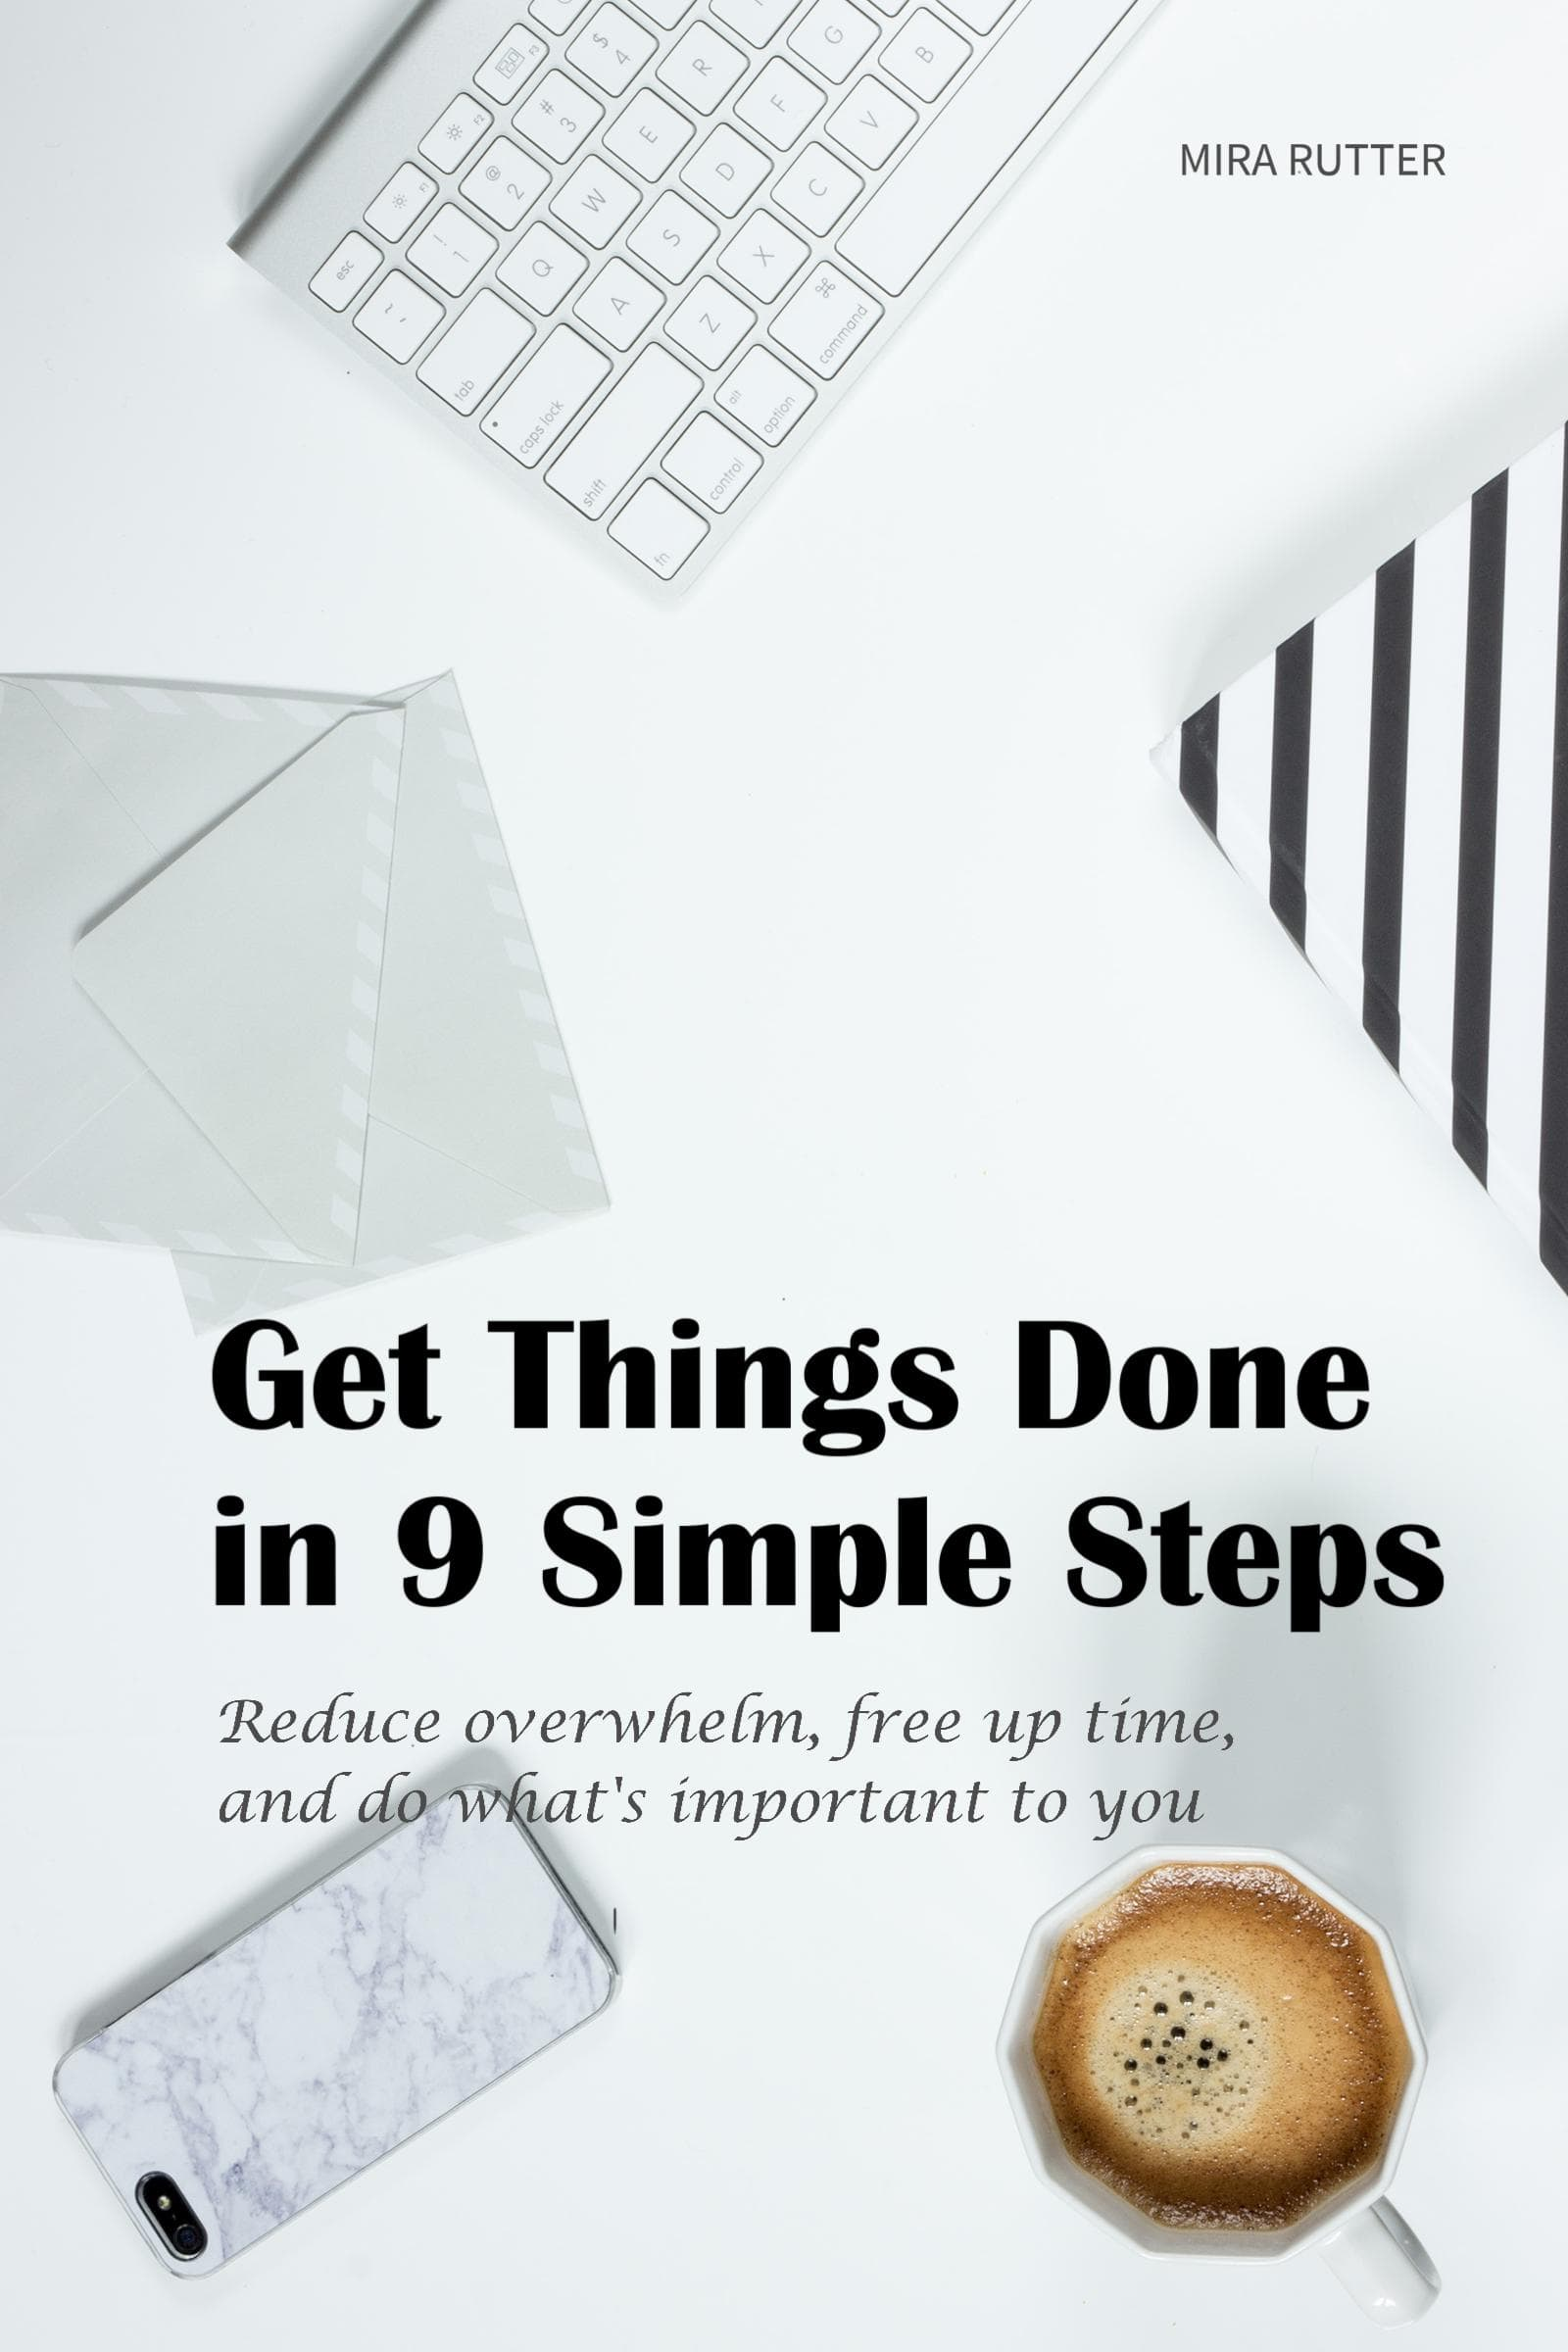 Get Things Done in 9 Simple Steps Guide